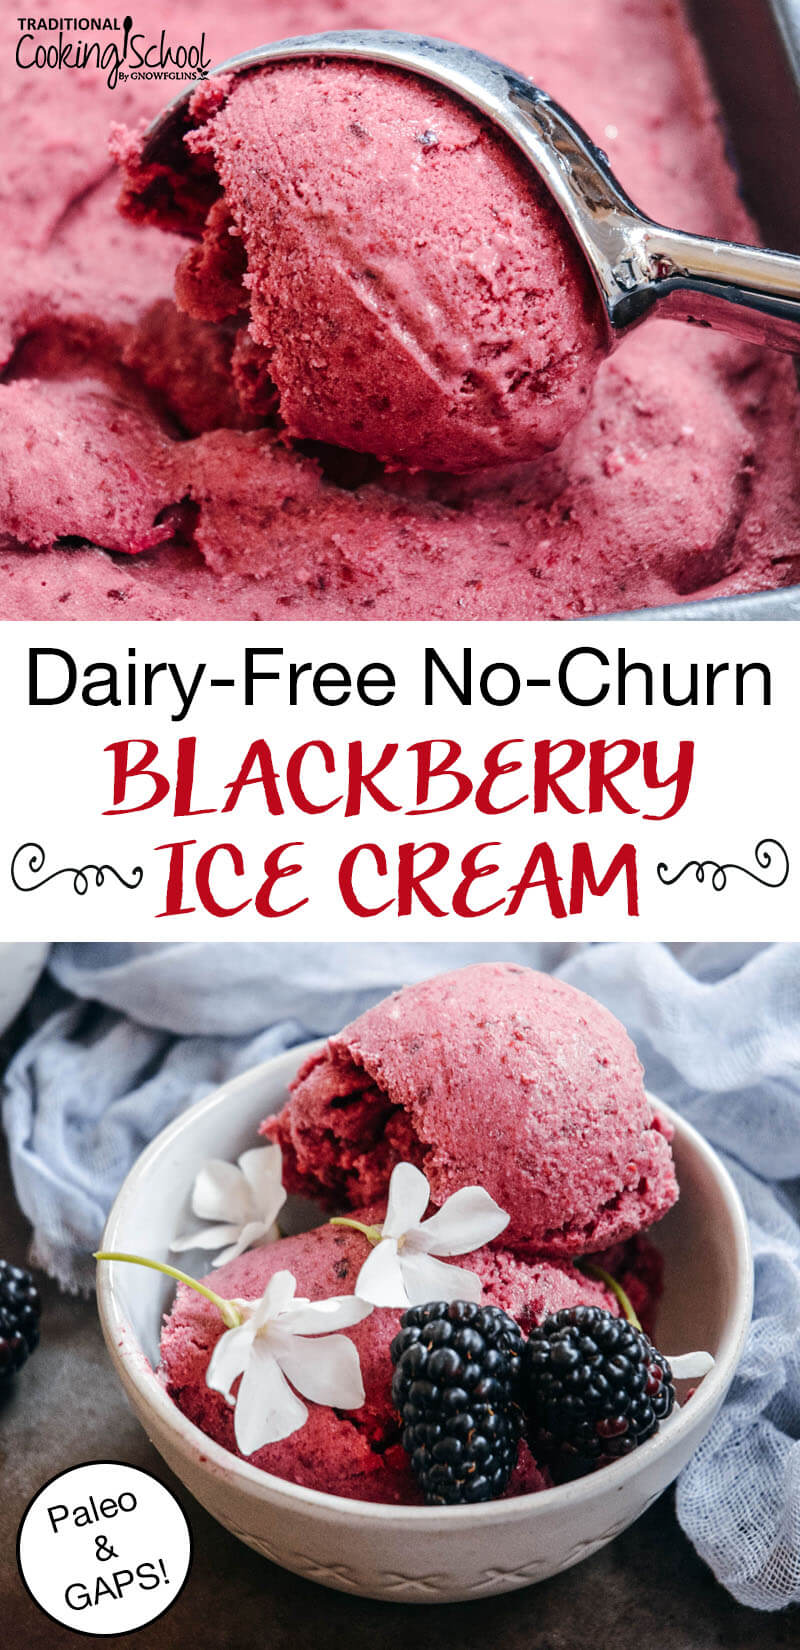 "photo collage of homemade ice cream, pink-colored and topped with blackberries and blackberry blossoms, with text overlay: ""Dairy-Free No-Churn Blackberry Ice Cream (Paleo, GAPS)"""